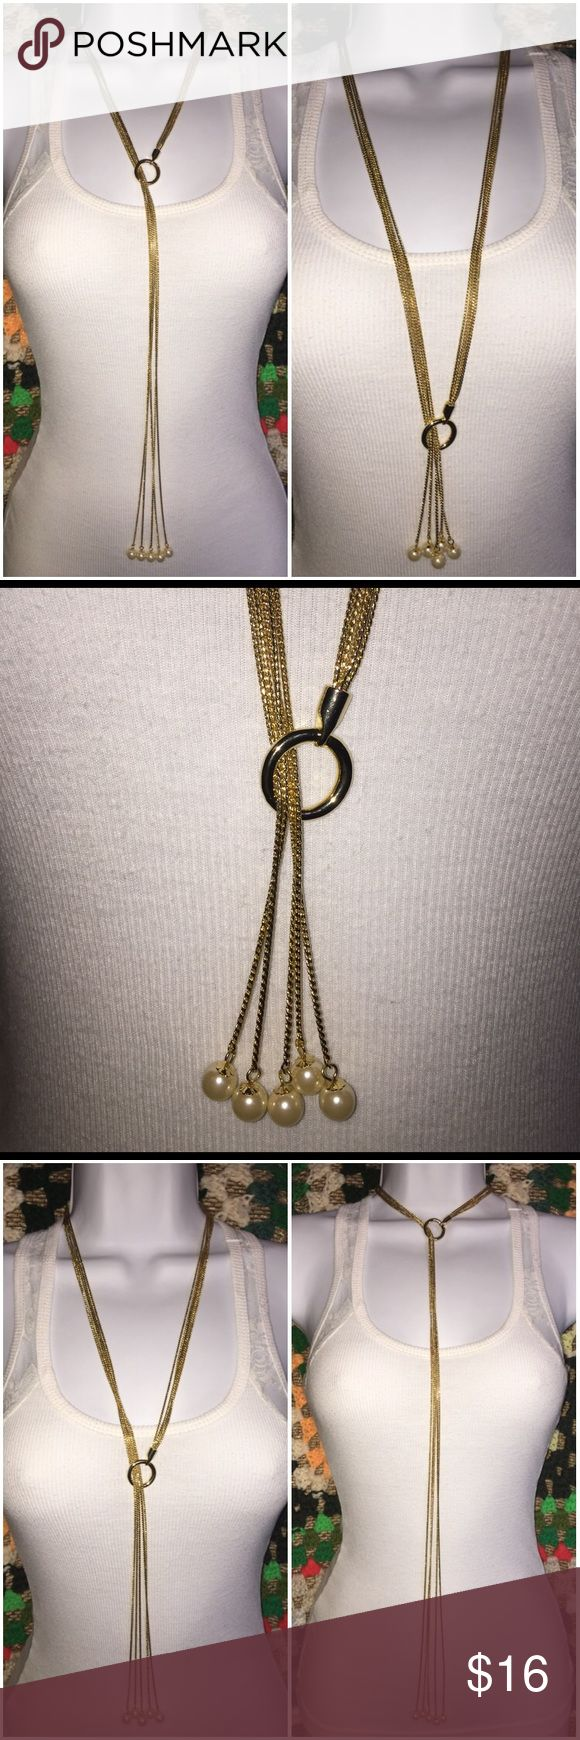 "R.J. Graziano Pearl Gold Tassel Lariat Necklace R.J. Graziano Faux Pearl Gold Tone Lariat Tassel Necklace. A Gorgeous timeless design captured in extraordinary detail. A Finely crafted creation from hand-fashioned faux Pearls & gold tone multi dangle strands that leads to small faux Pearl ball ends. Gold tone O-ring loop on one end so you can create many ways to wear this lariat (some ways shown in pictures), very versatile! Compliments any wardrobe. Measurements: 33 1/4"" Long. Brand new in…"